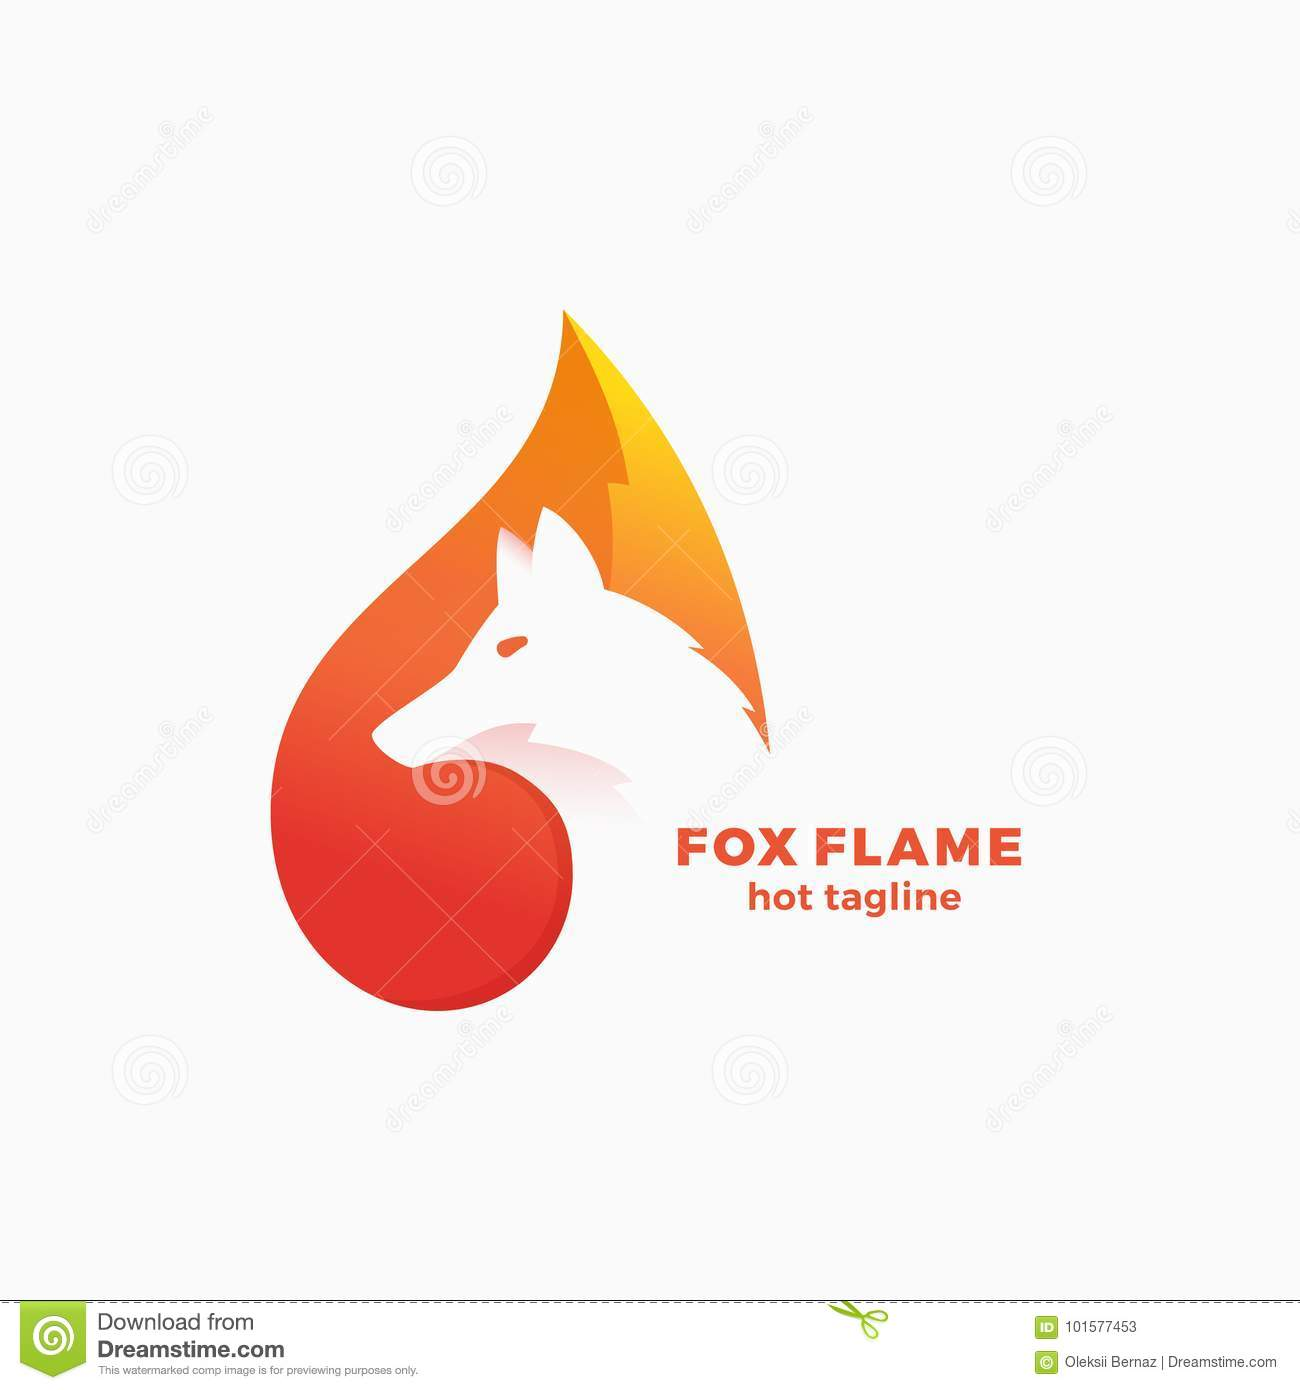 Fox Flame Abstract Vector Symbol, Sign or Logo Template. Negative Space Animal Face Modern Simple Design Concept.